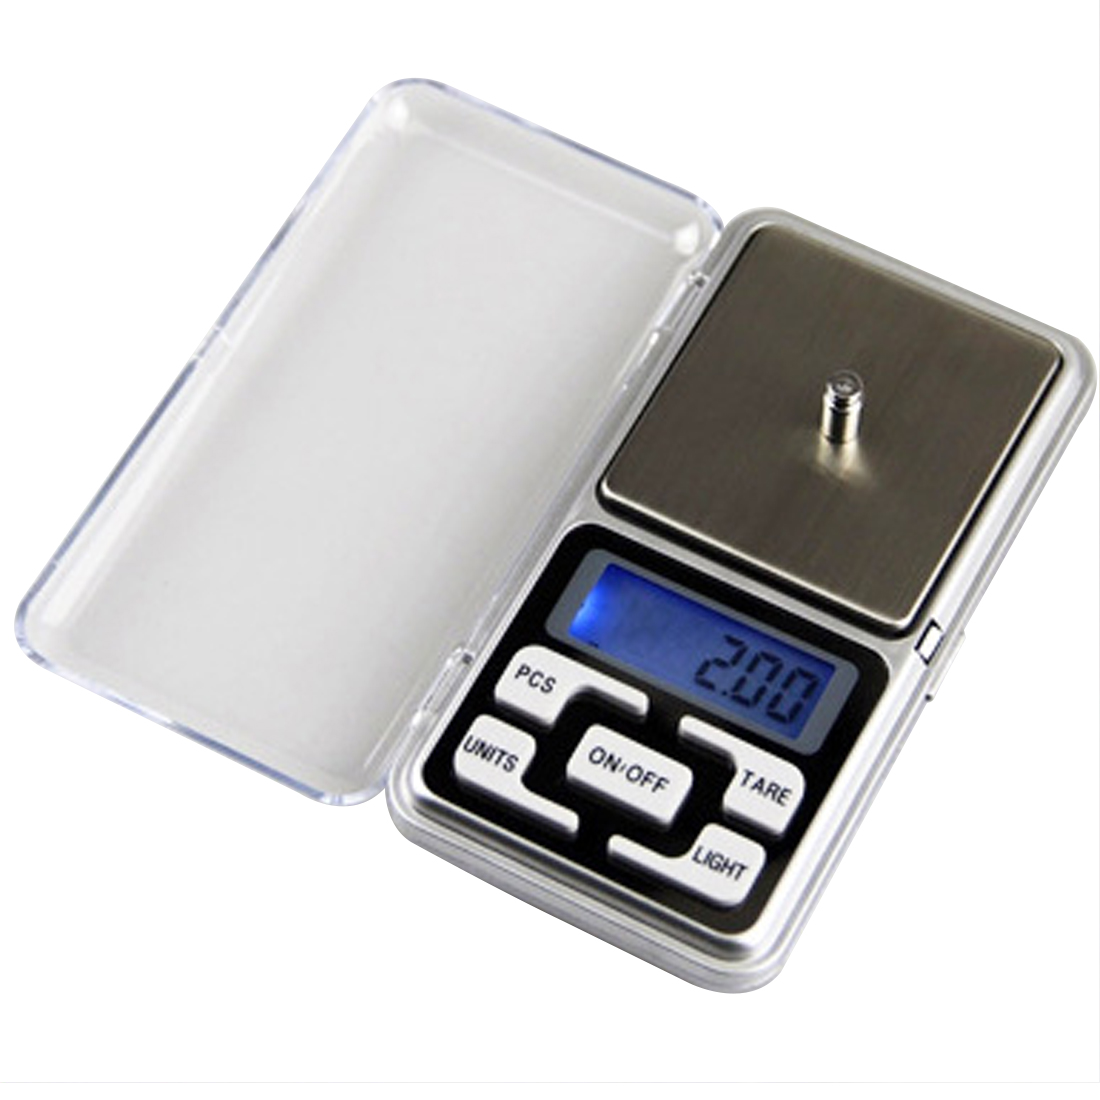 1pcs 200g/0.01g Mini Precision Digital Scales For Gold Bijoux Sterling Silver Scale Jewelry 0.01 Weight Electronic Scales high quality precise jewelry scale pocket mini 500g digital electronic balance brand weighing scales kitchen scales bs